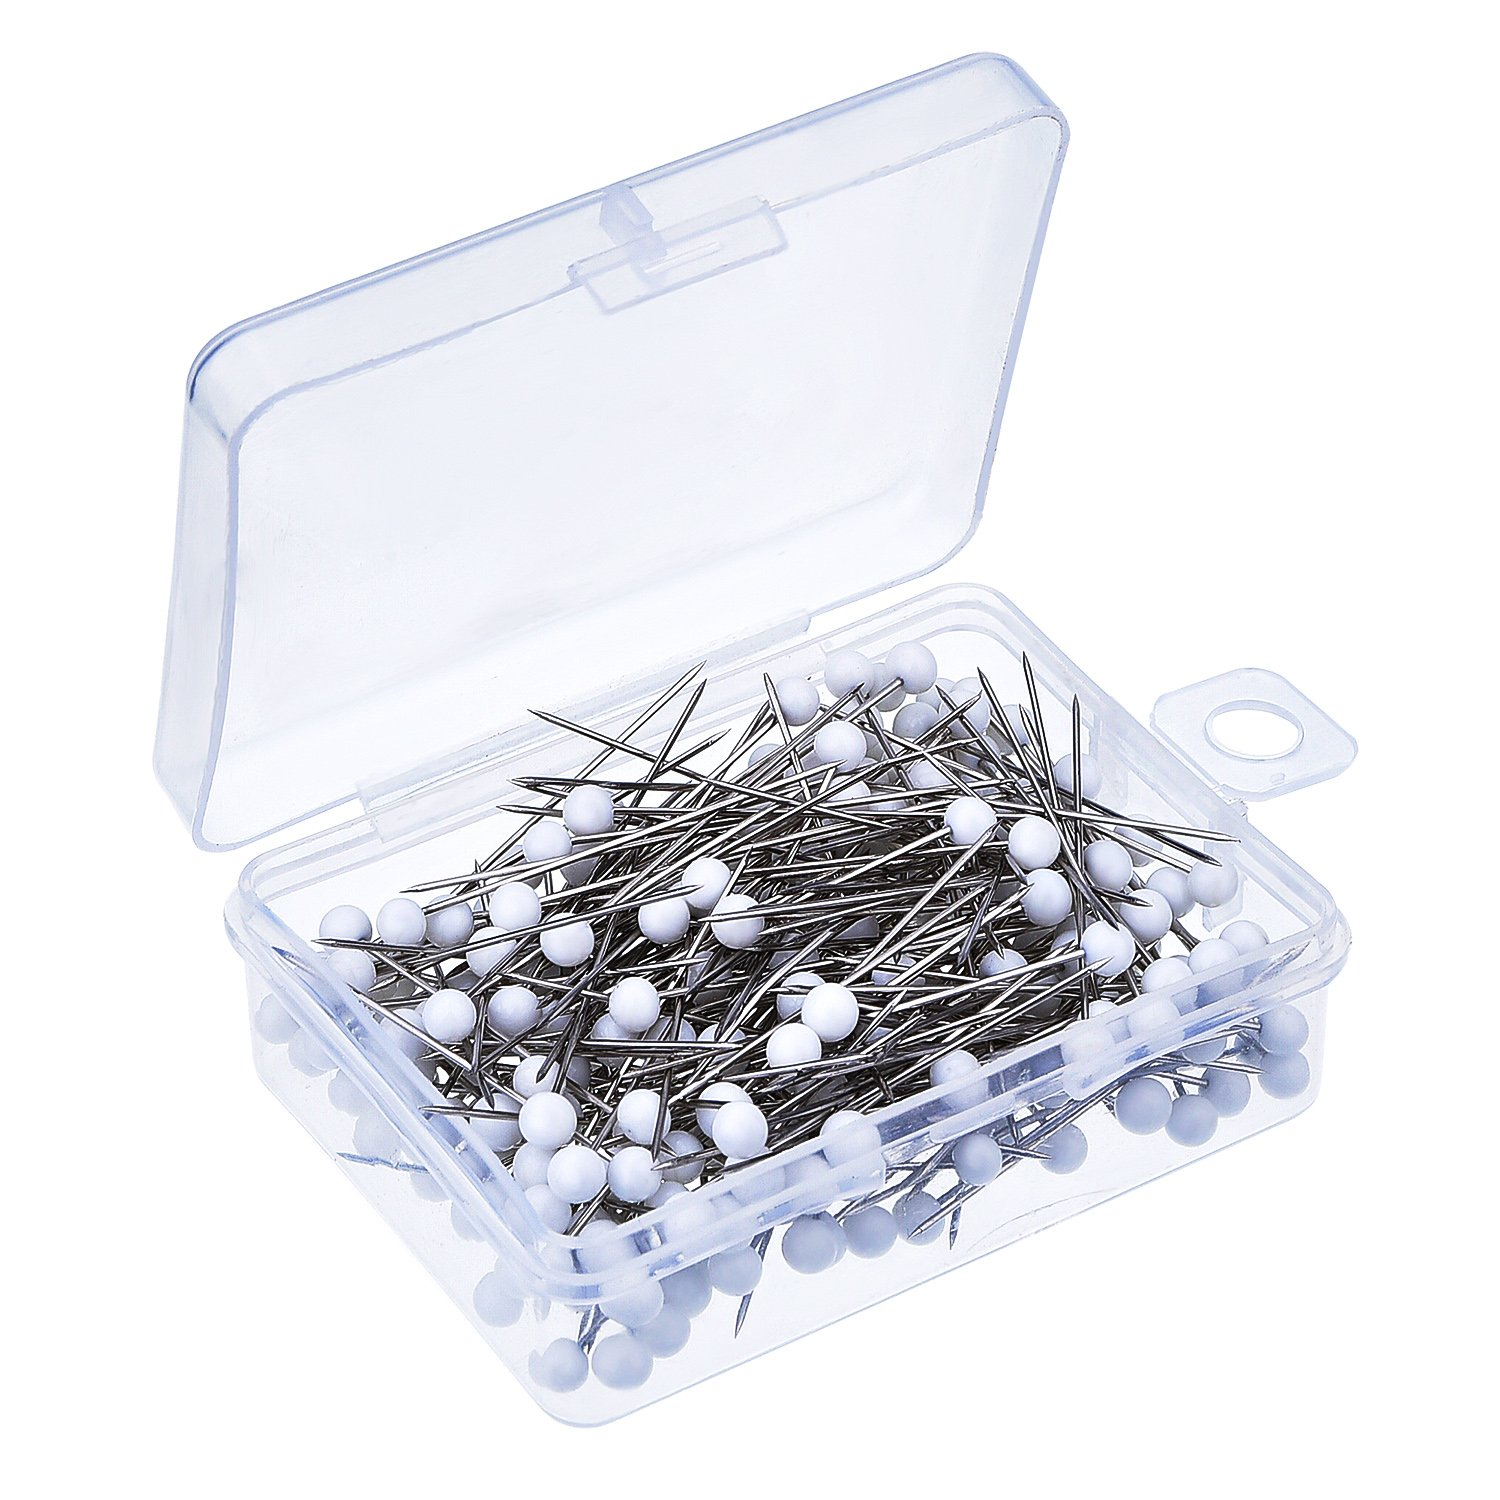 250 Pieces Glass Head Pins Boxed for Dressmaker (Multicolor) Outus 4336996551